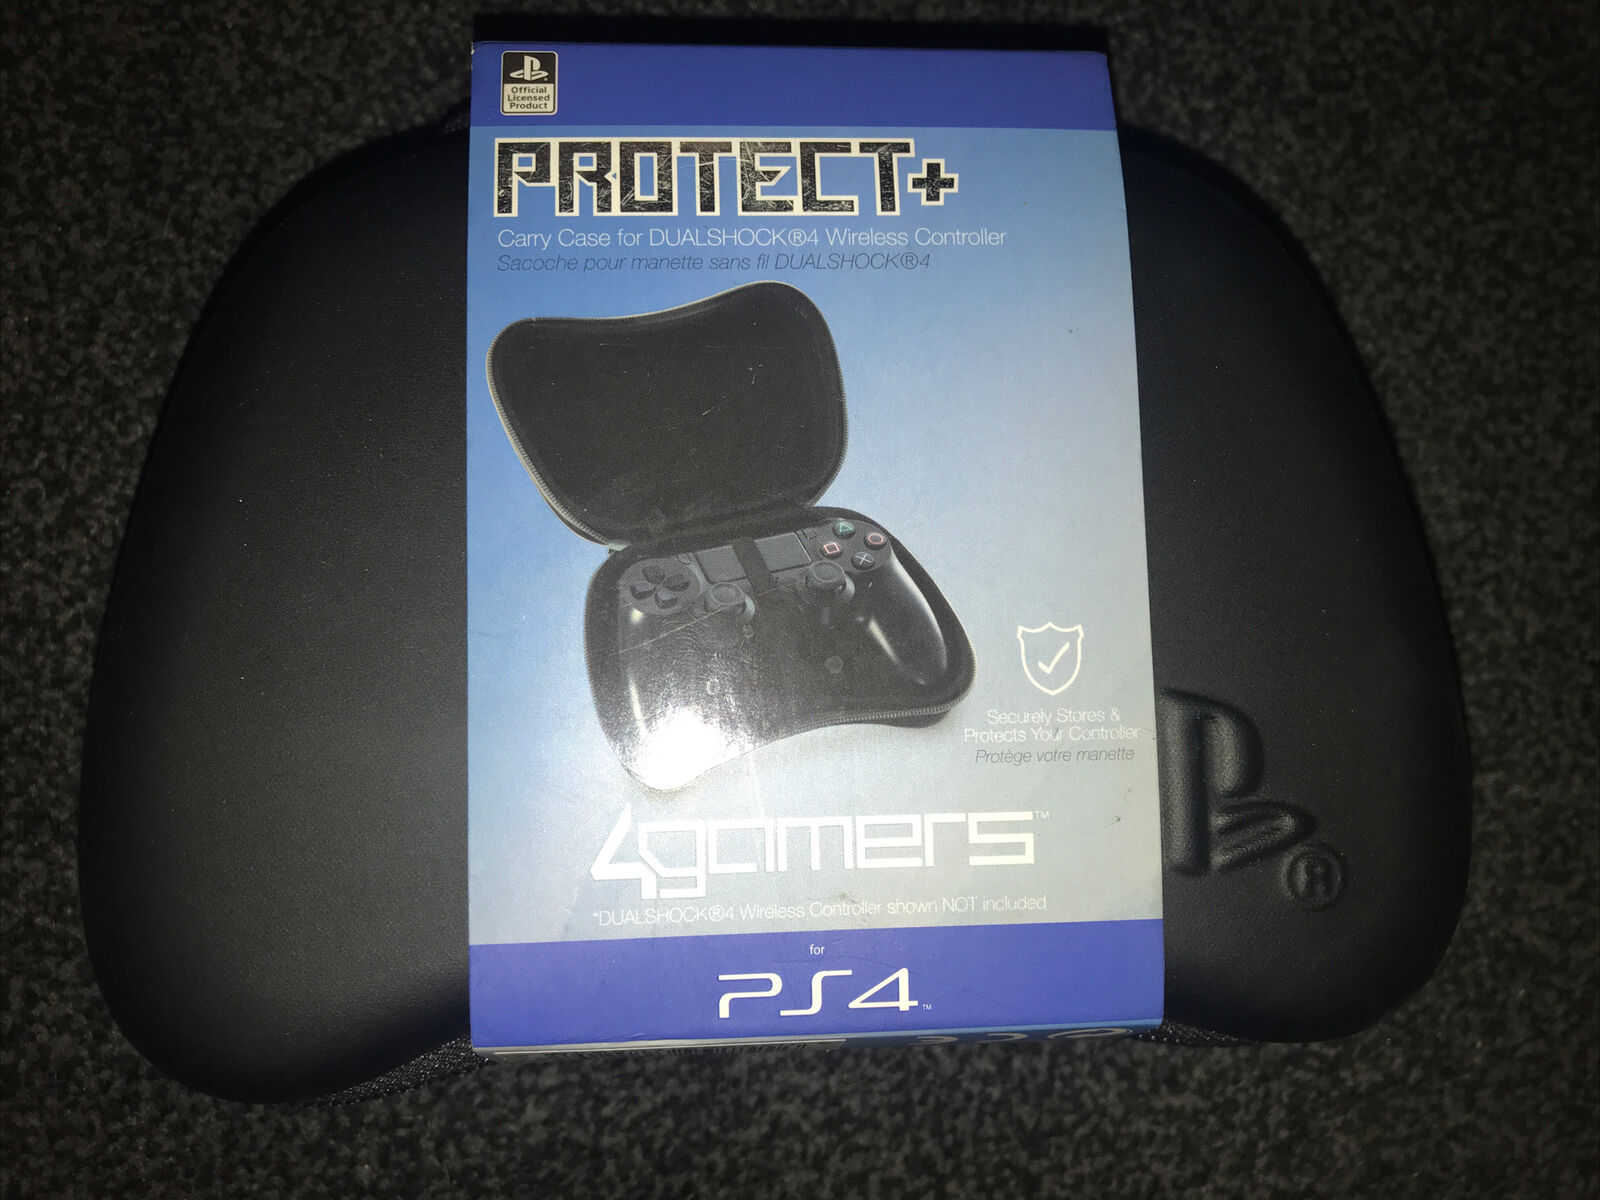 PS4 Protective Carry Case for Dual Shock Wireless Controller For PS4 (NEW)